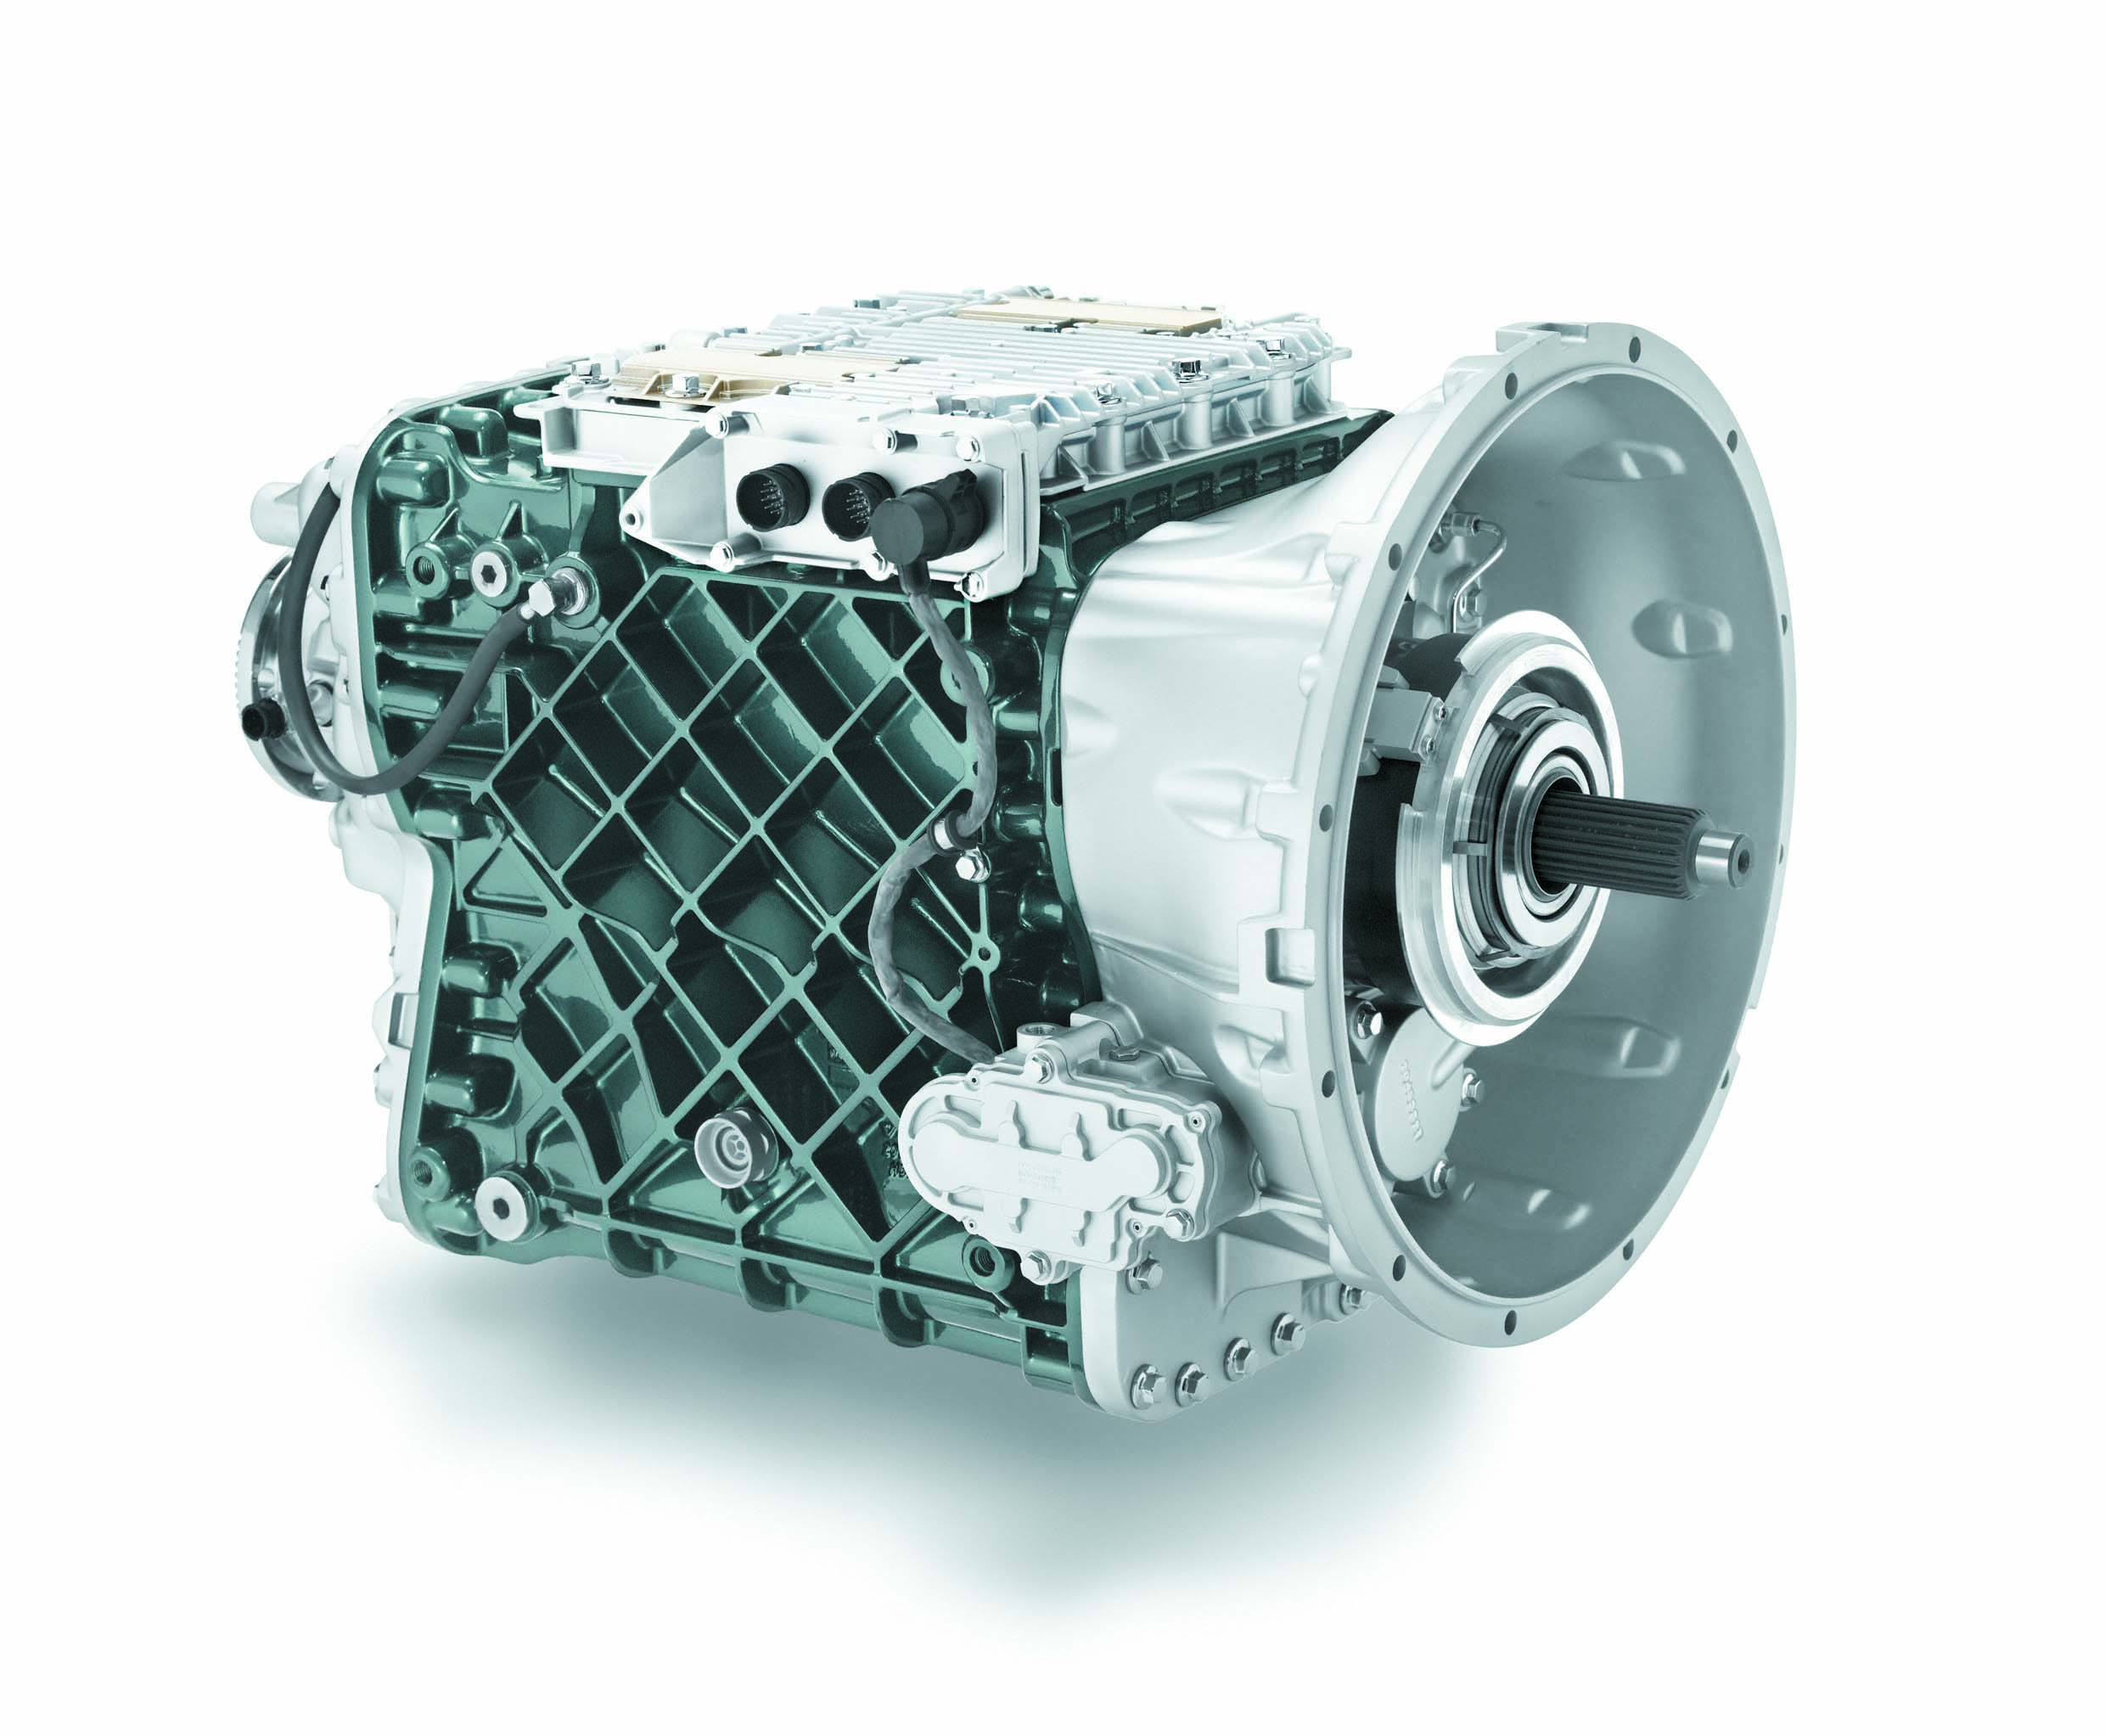 Volvo gears up: How the truck maker's Adaptive Gearing stretches